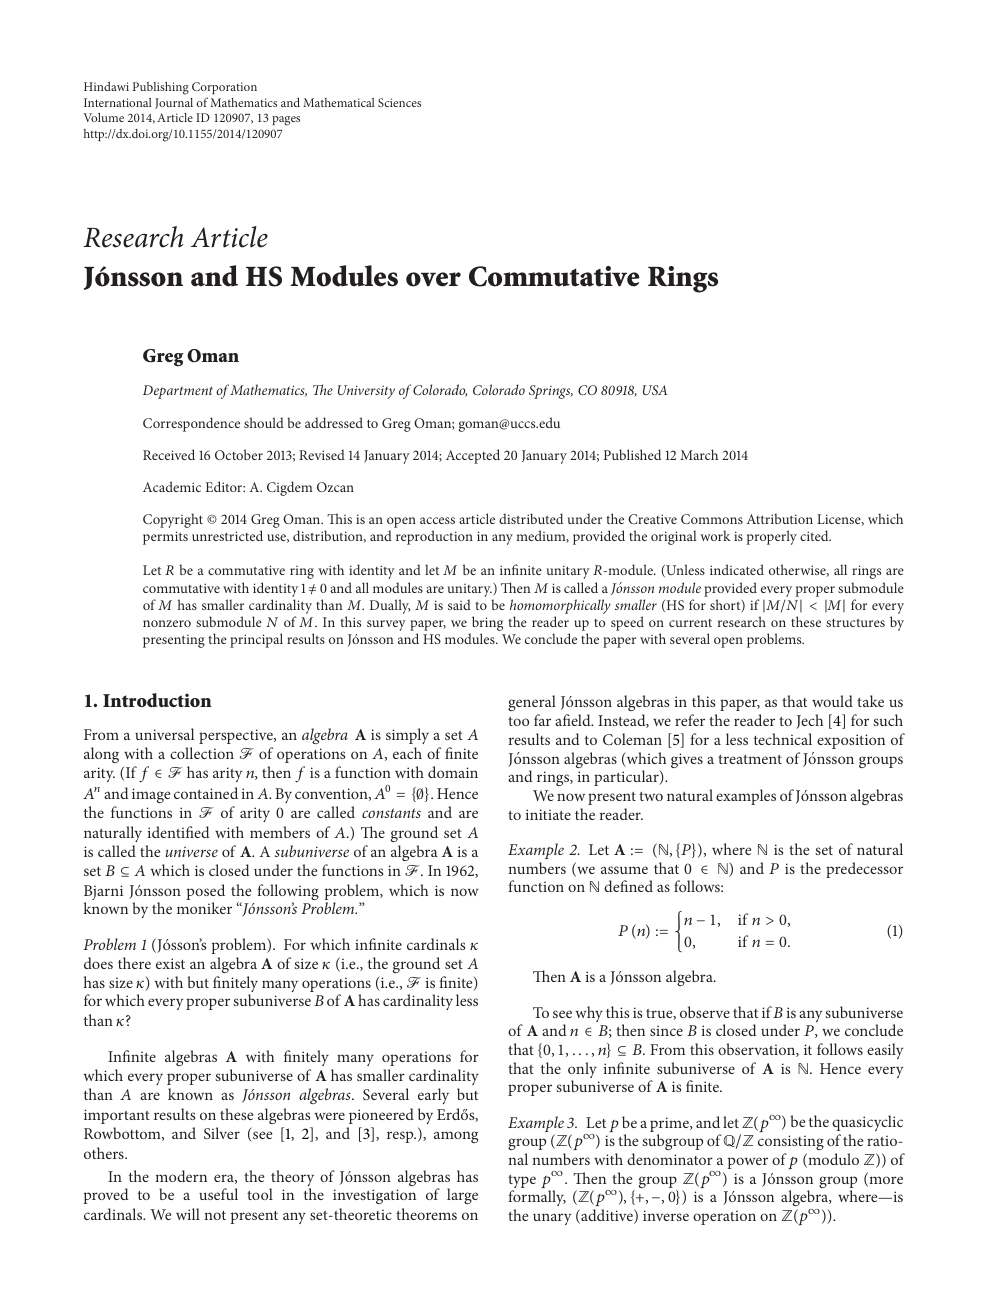 Jónsson and HS Modules over Commutative Rings – topic of research